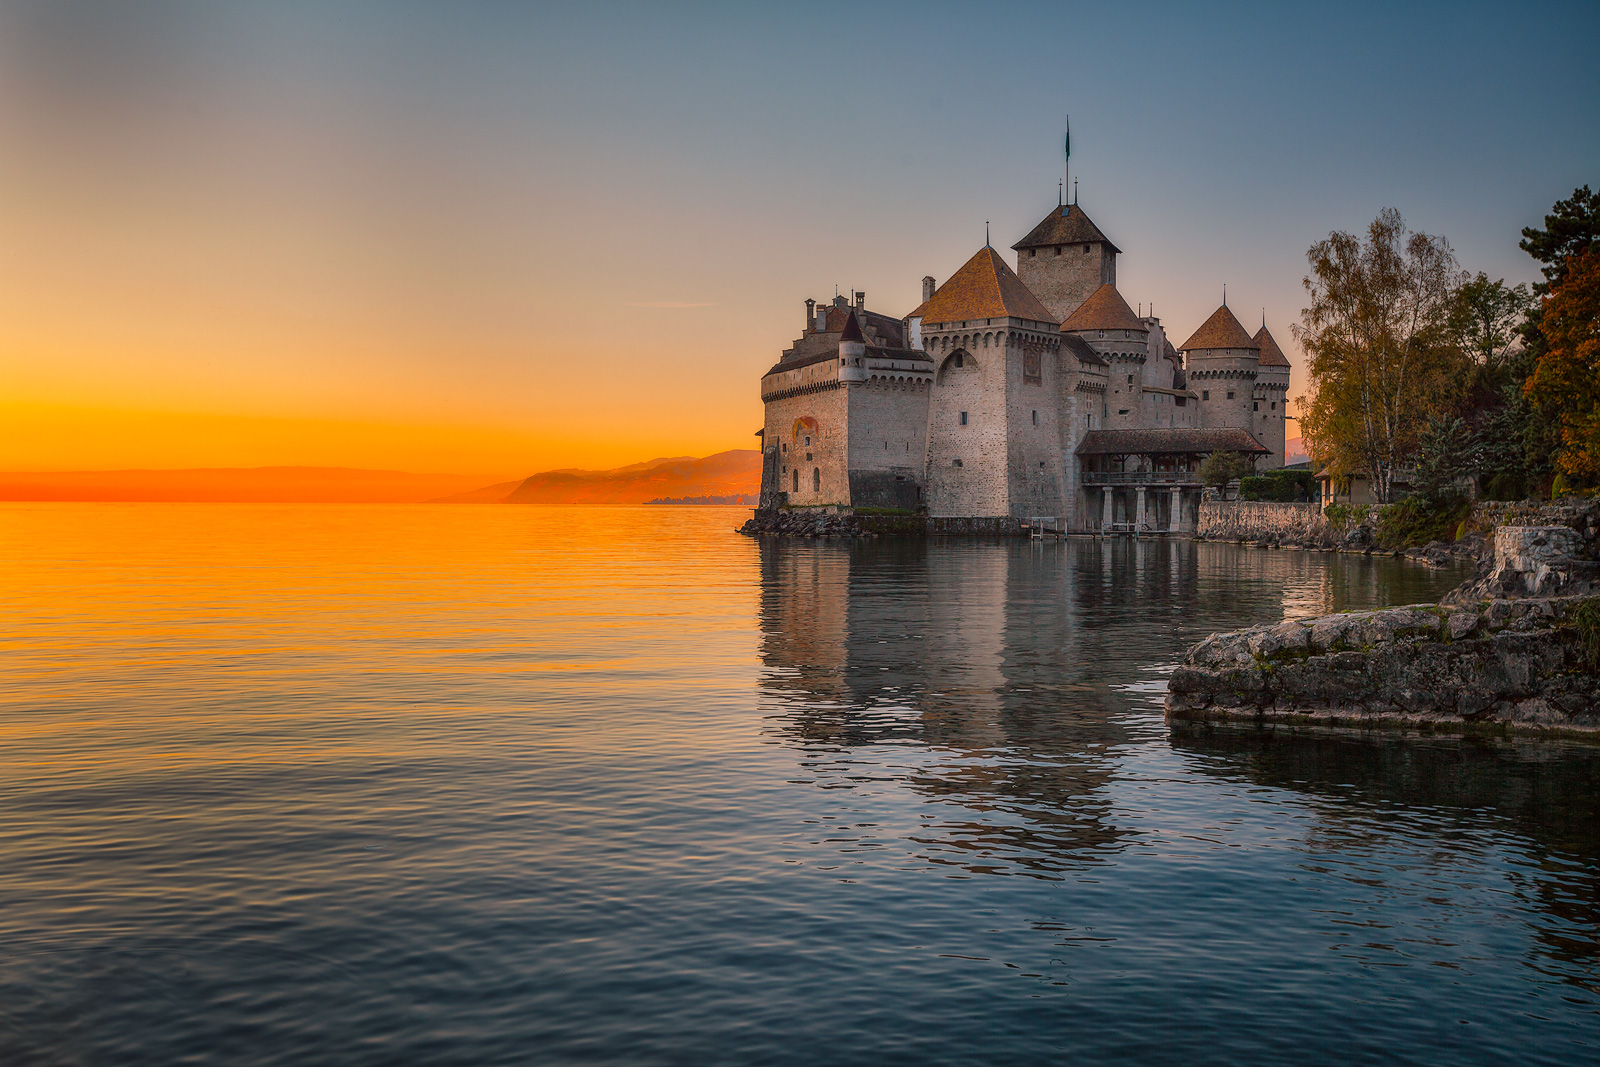 castle, chillon castle, evening, lake geneva, switzerland, montreux, sunset, photo